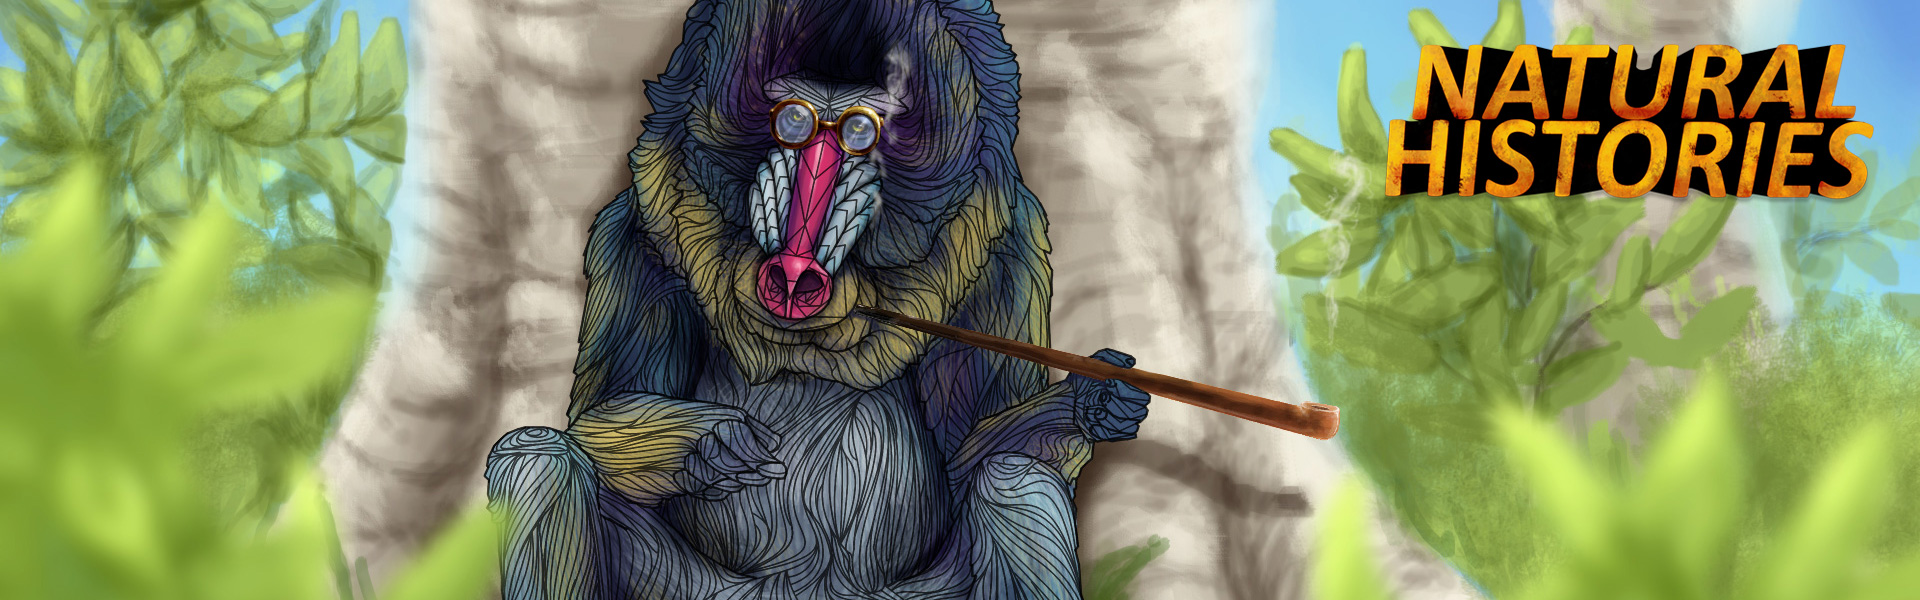 Mandrill illustration for BBC Radio 4 Natural Histories series